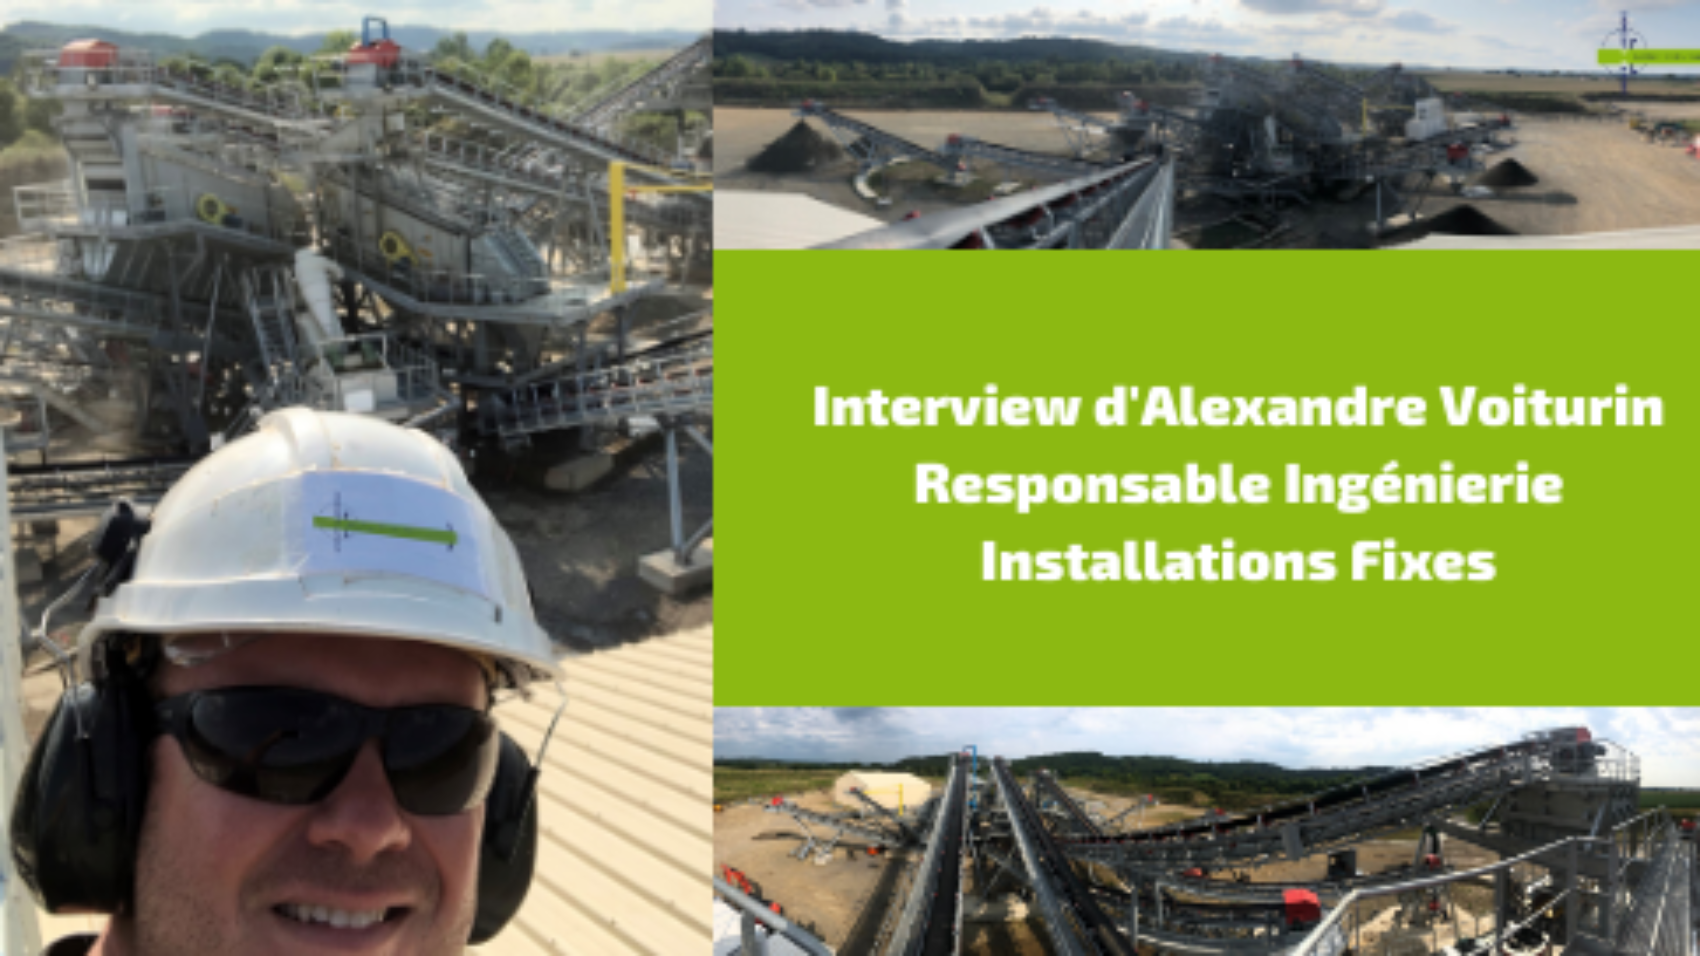 Interview d'Alexandre Voiturin, Responsable Ingénierie Installations Fixes - Garonne Concassage Criblage - Solution concassage criblage fixe